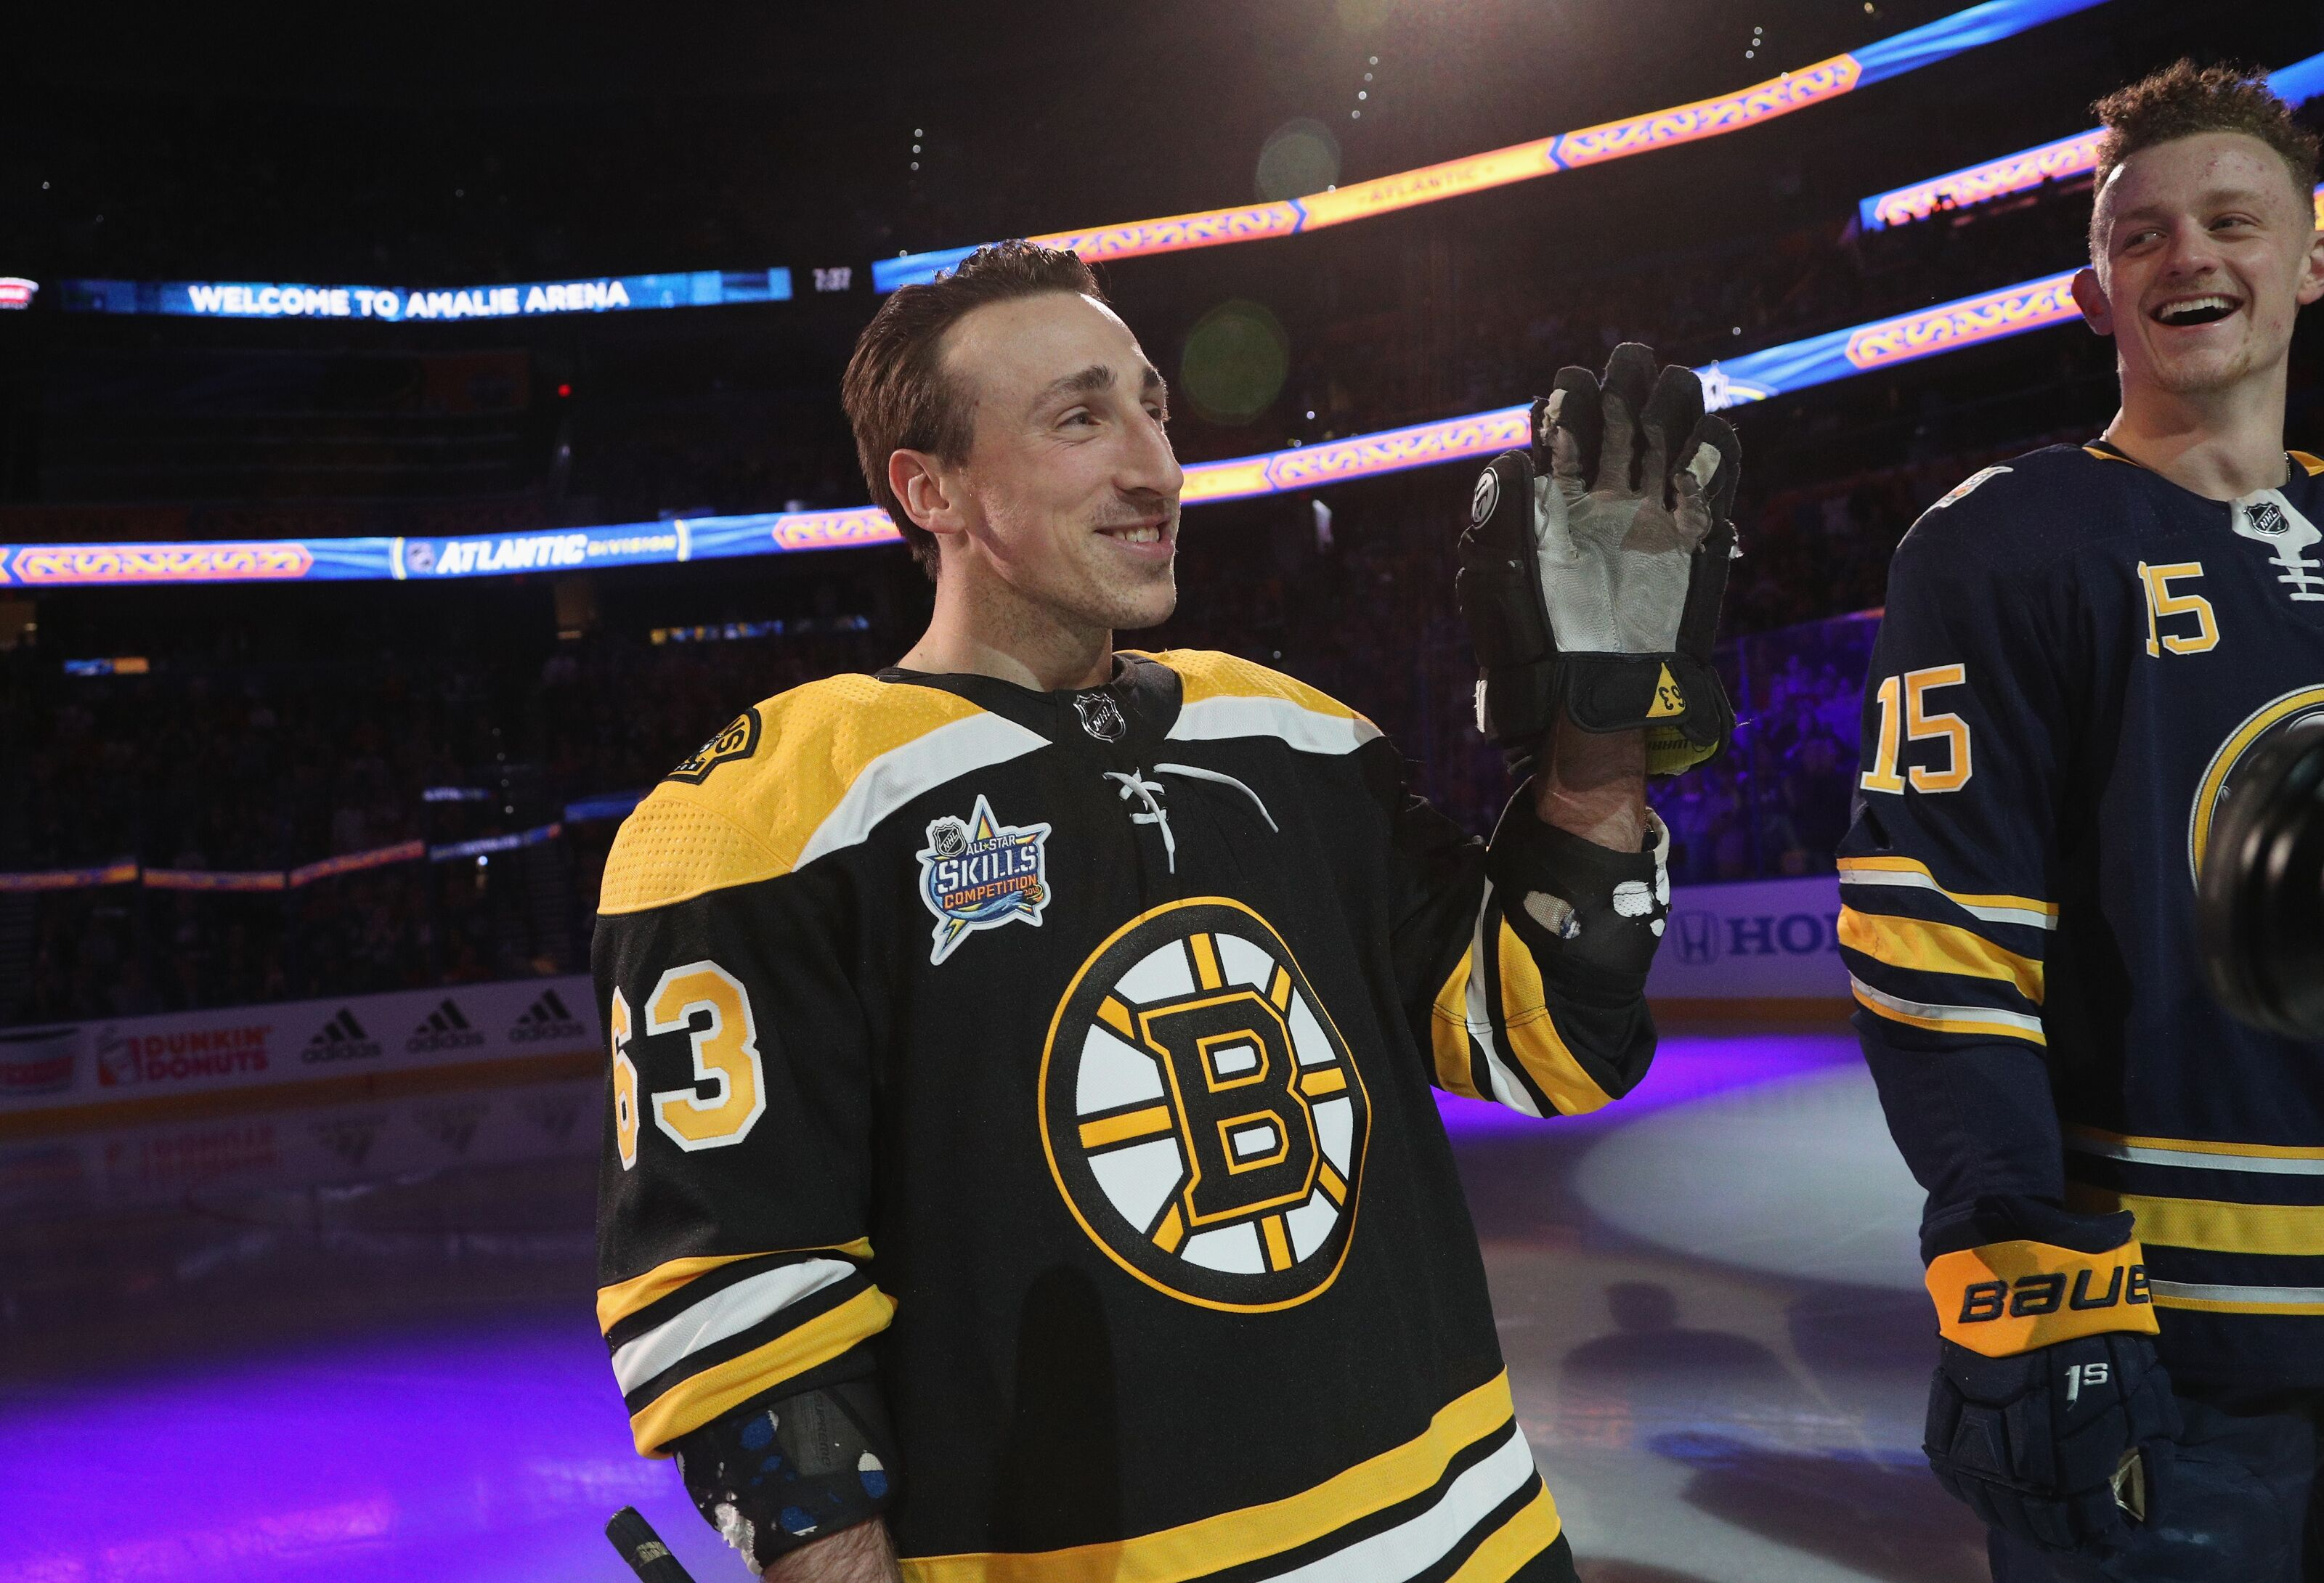 Boston Bruins: Brad Marchand is the perfect All-Star Game captain